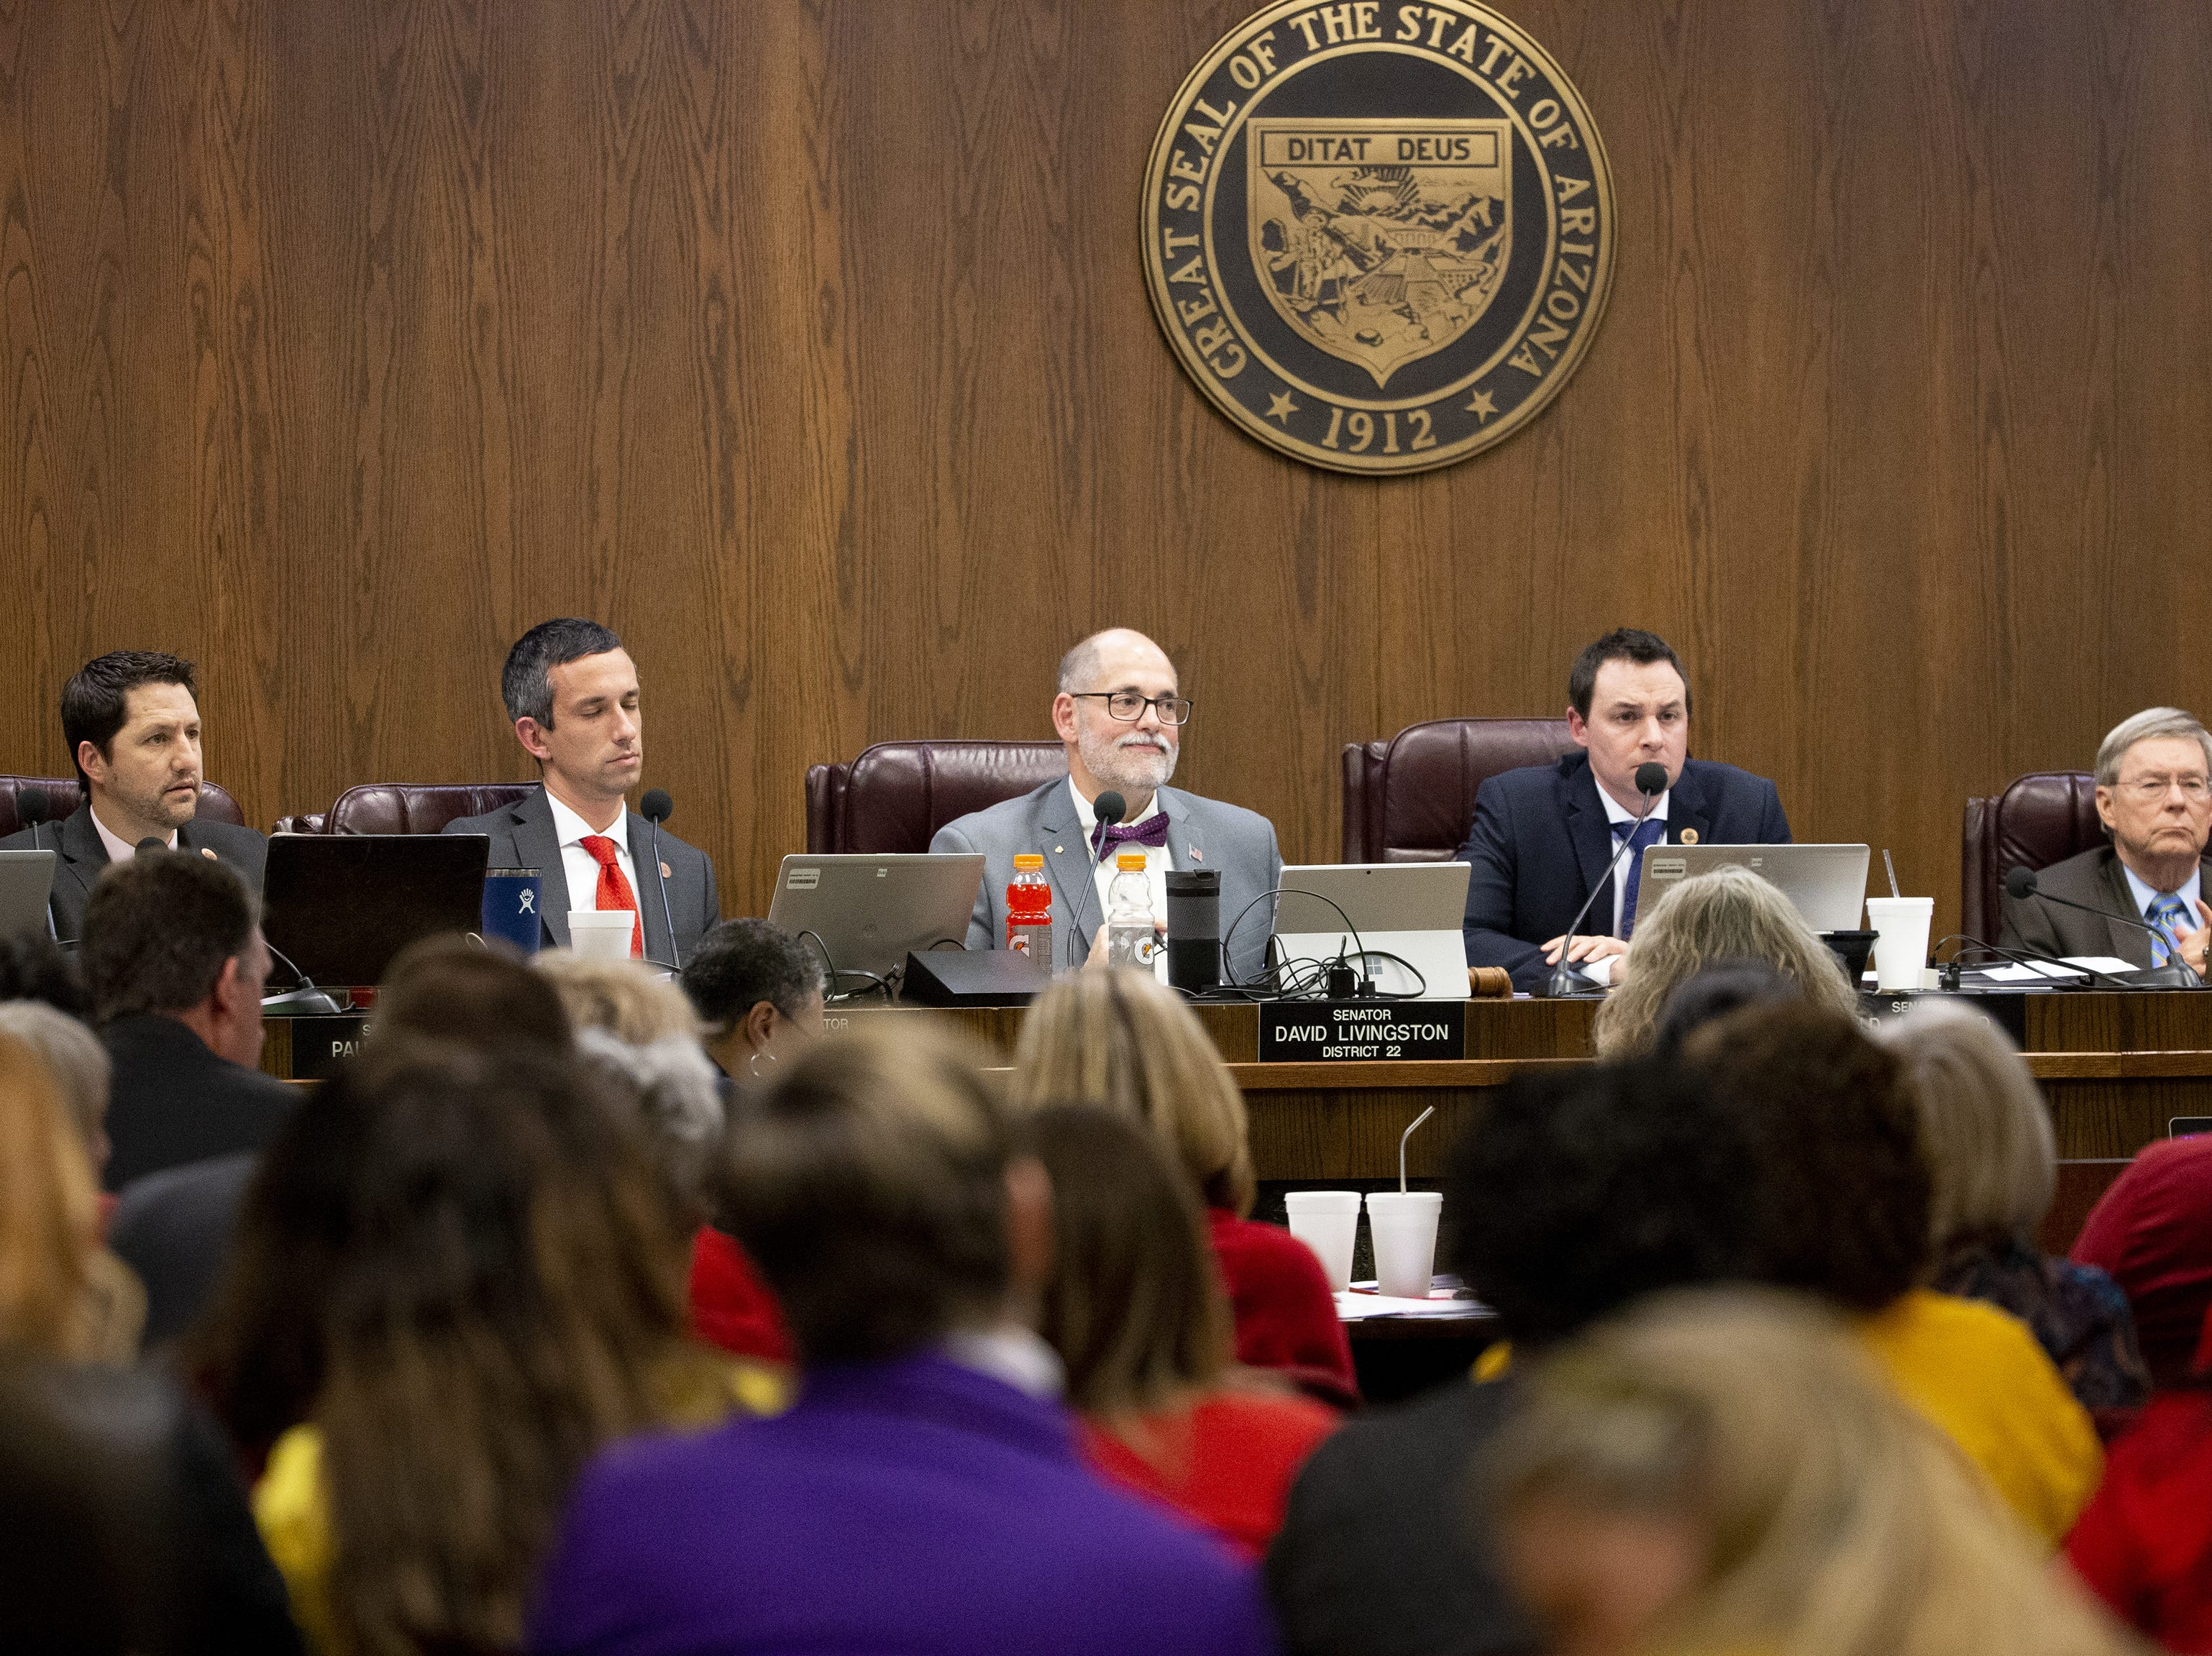 Members of the senate finance committee listen during a hearing on school vouchers in a senate hearing room at the state Capitol in Phoenix on February 13.